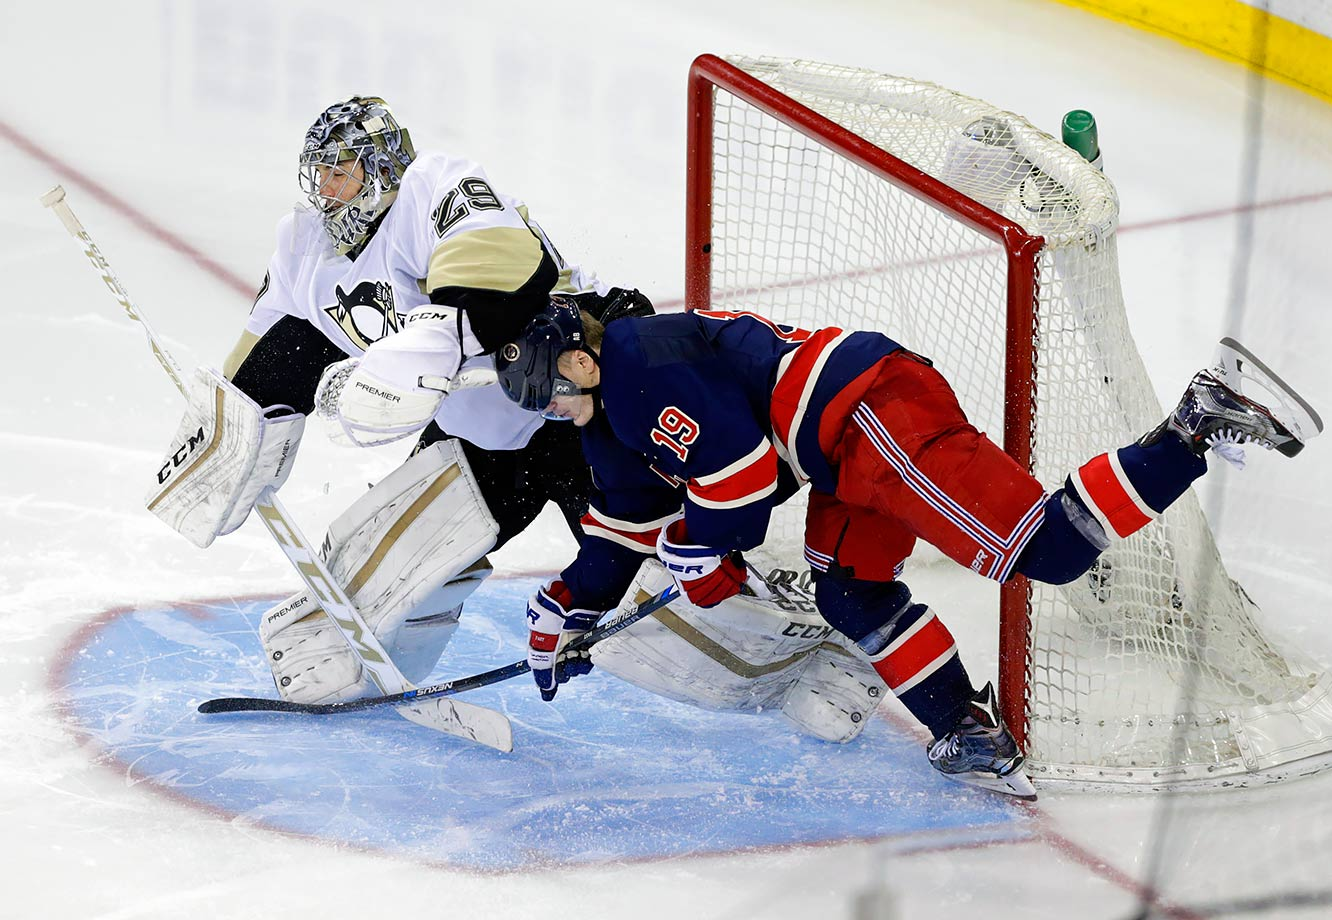 New York Rangers right wing Jesper Fast collides with Pittsburgh Penguins goalie Marc-Andre Fleury in the third period of their game in New York City.